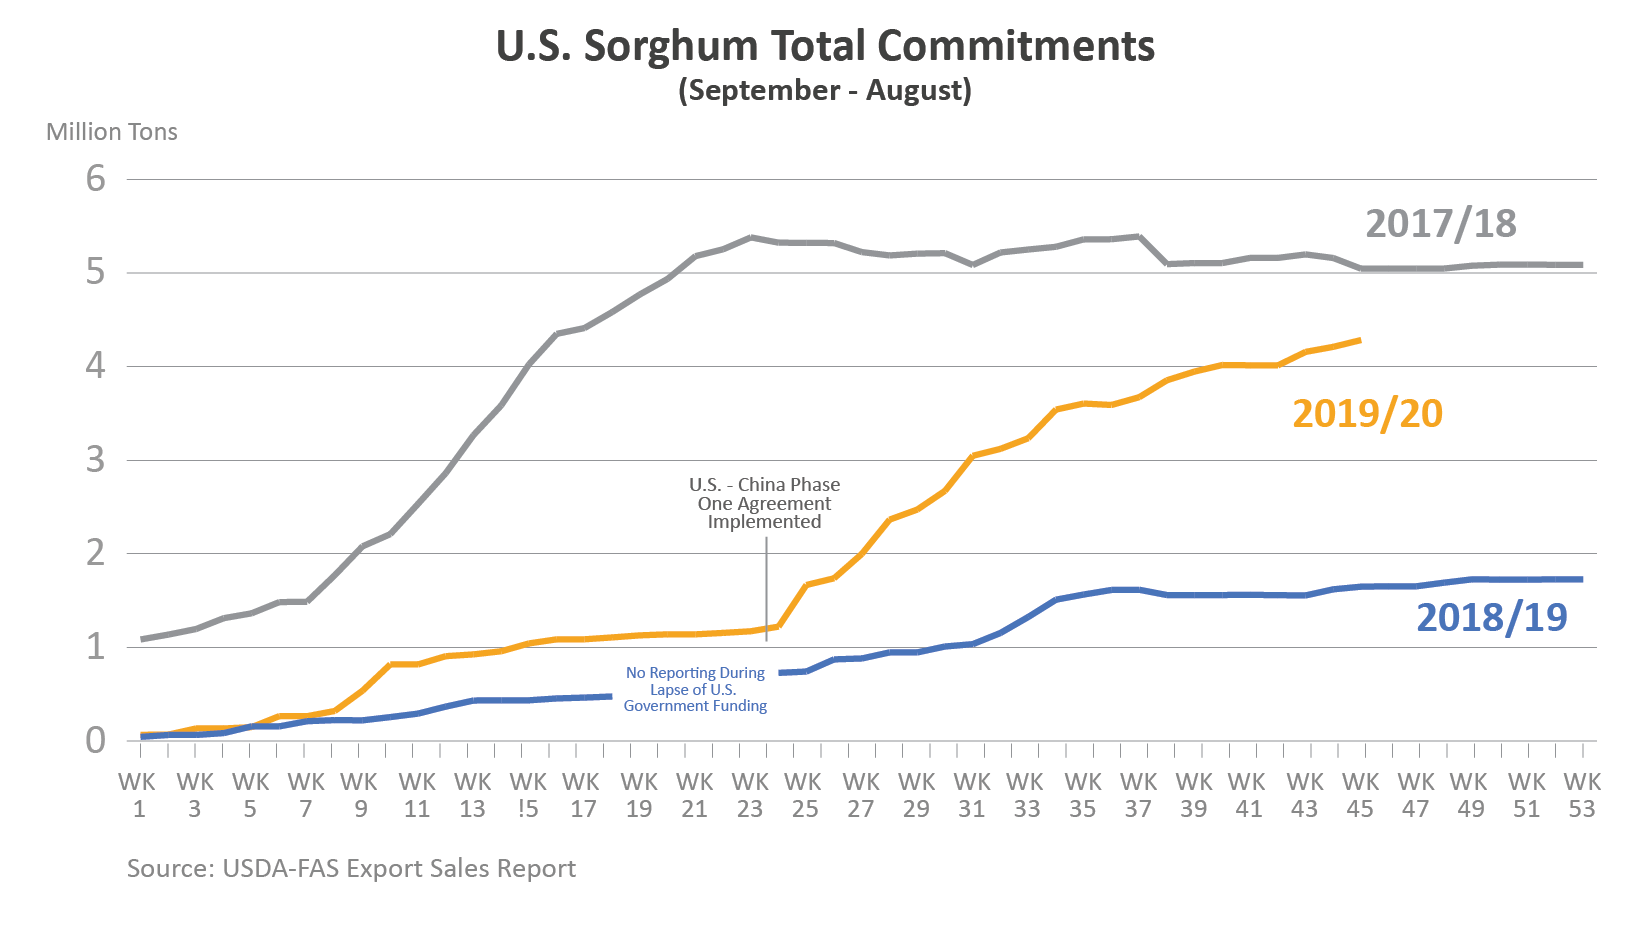 Line graph showing total commitments of U.S. sorghum from MY2017/18 to MY2019/20.